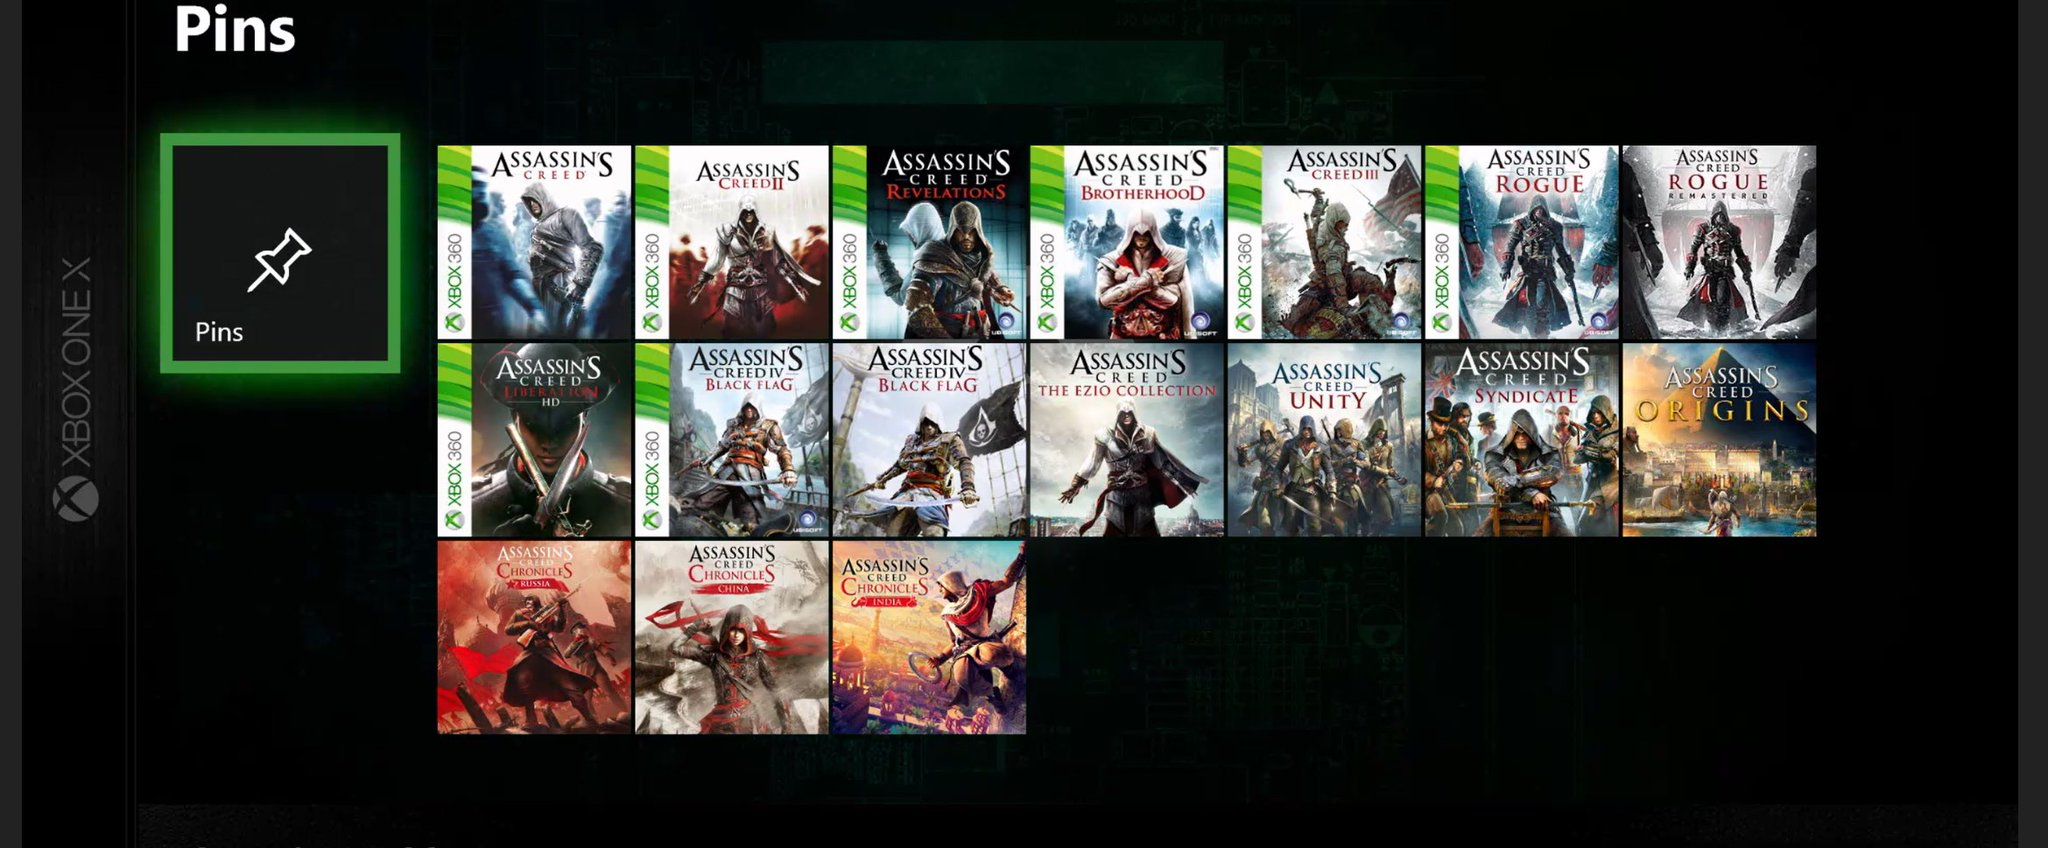 All Assassin S Creed Console Games Are Now Playable On Xbox One